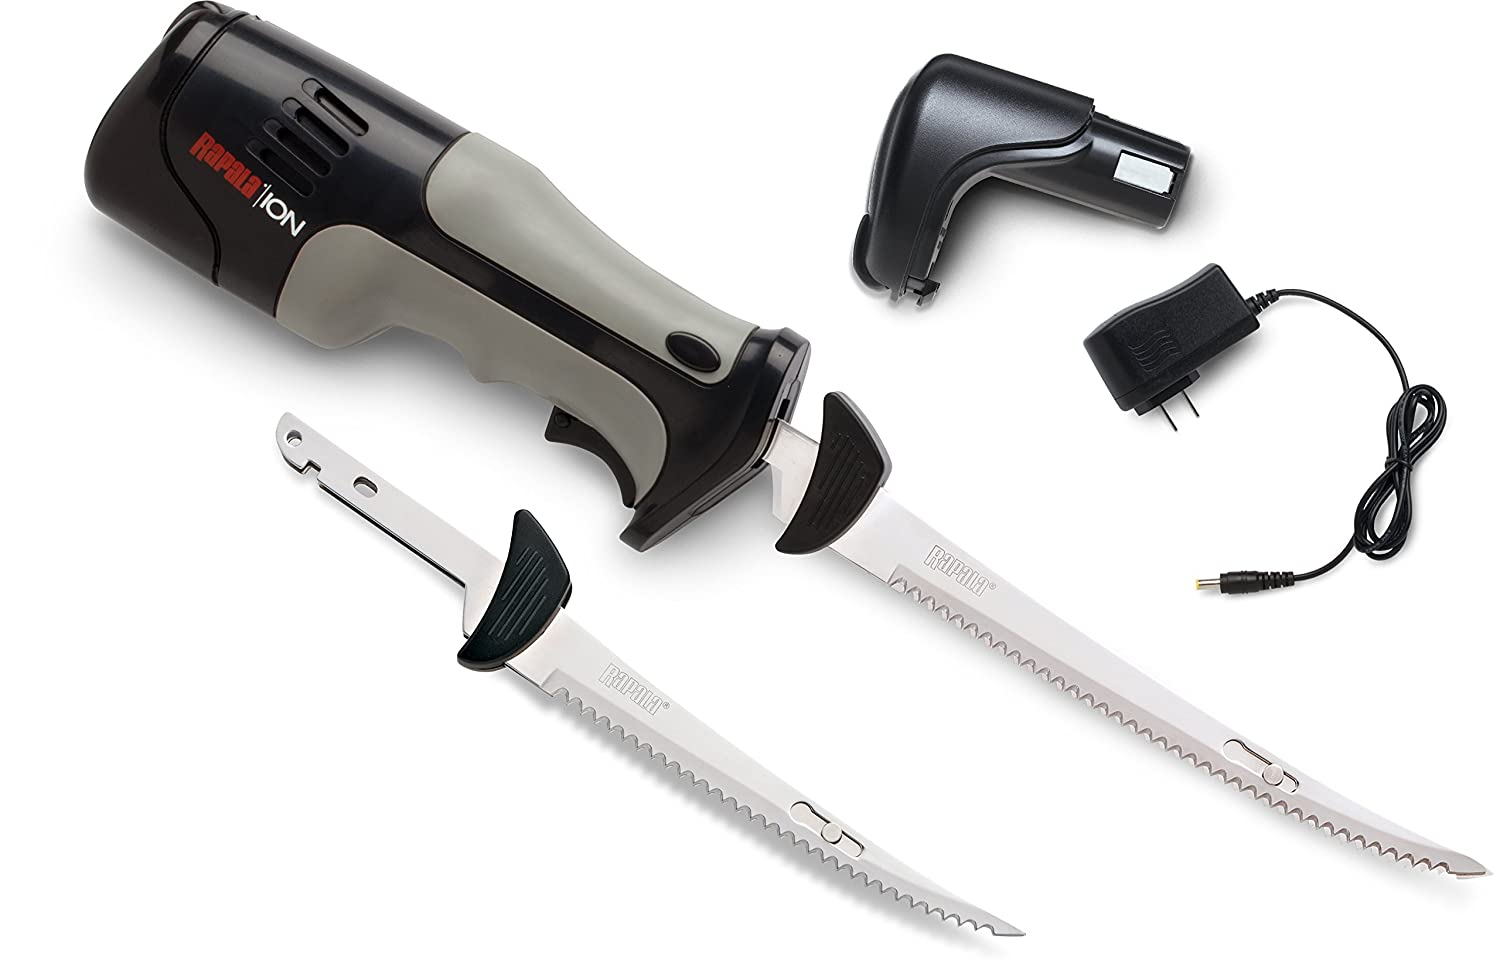 Rapala Lithium Ion Cordless Fillet Knife Kit Review